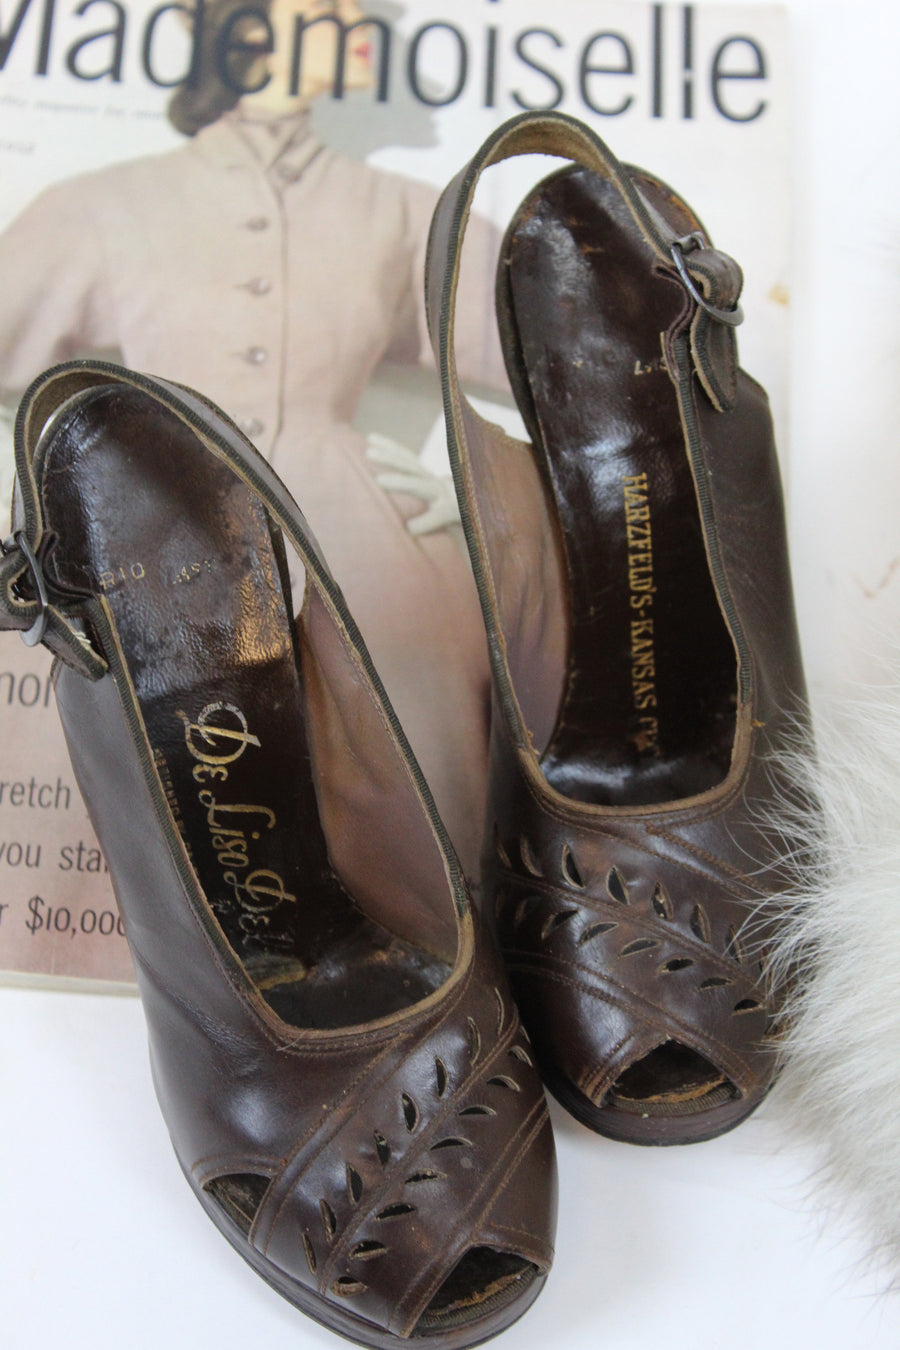 1940s peep toe platform shoes size 4 us | vintage peep toe slingbacks chocolate